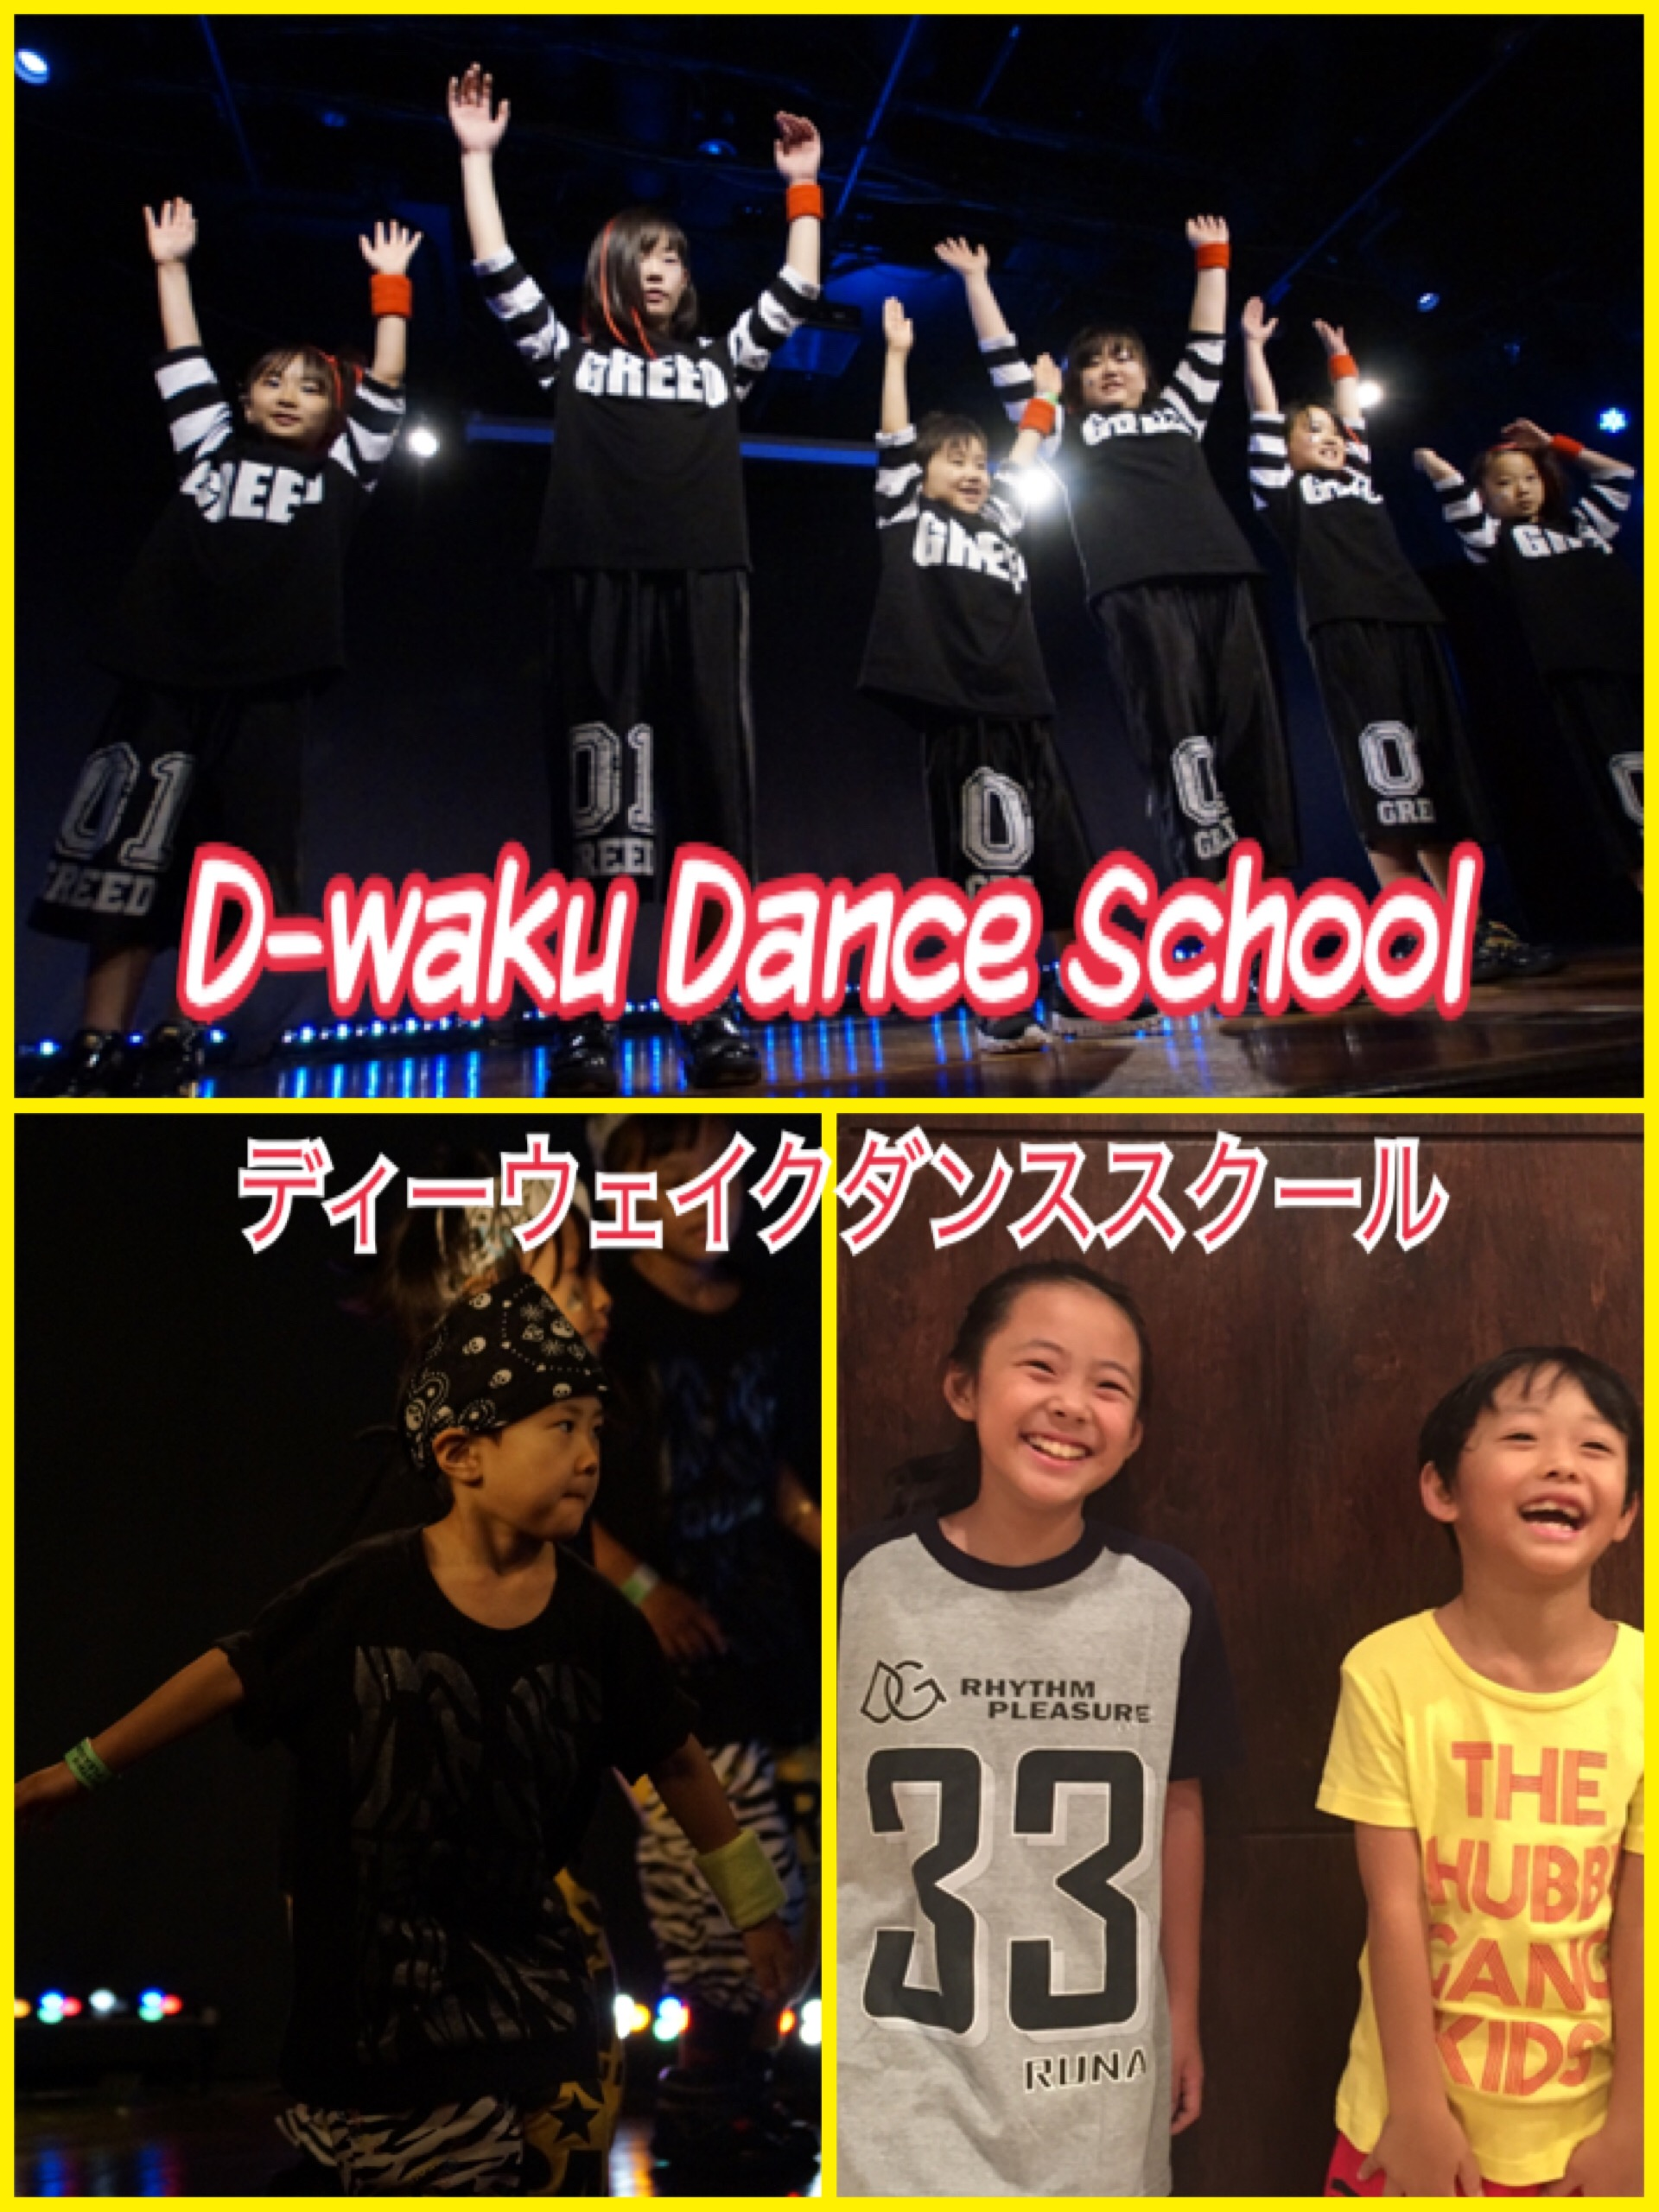 D-waku Dance School